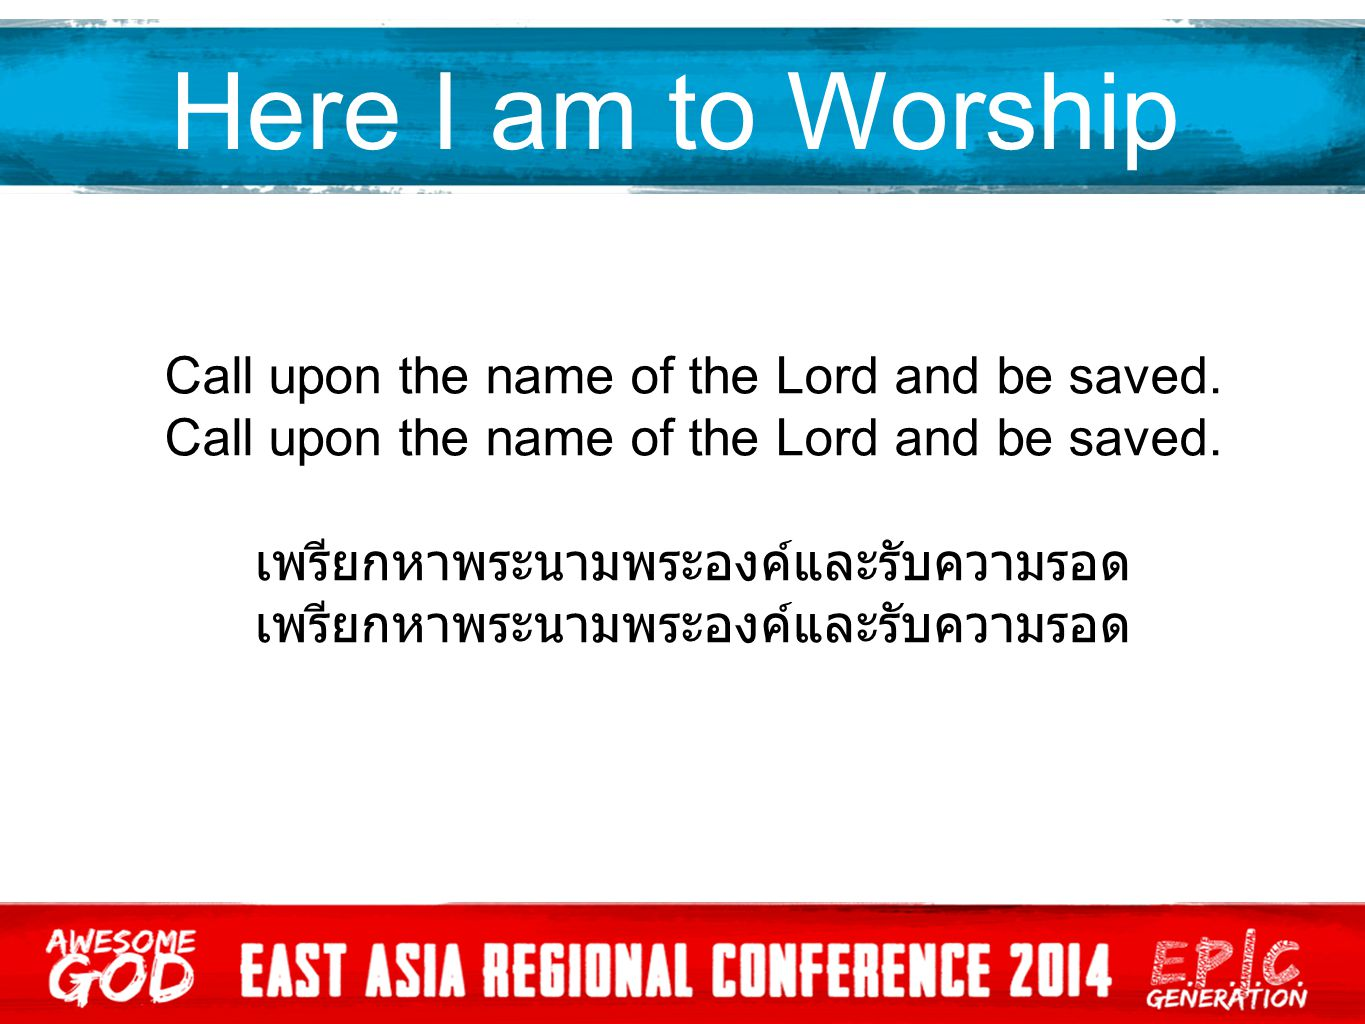 Here I am to Worship Call upon the name of the Lord and be saved.